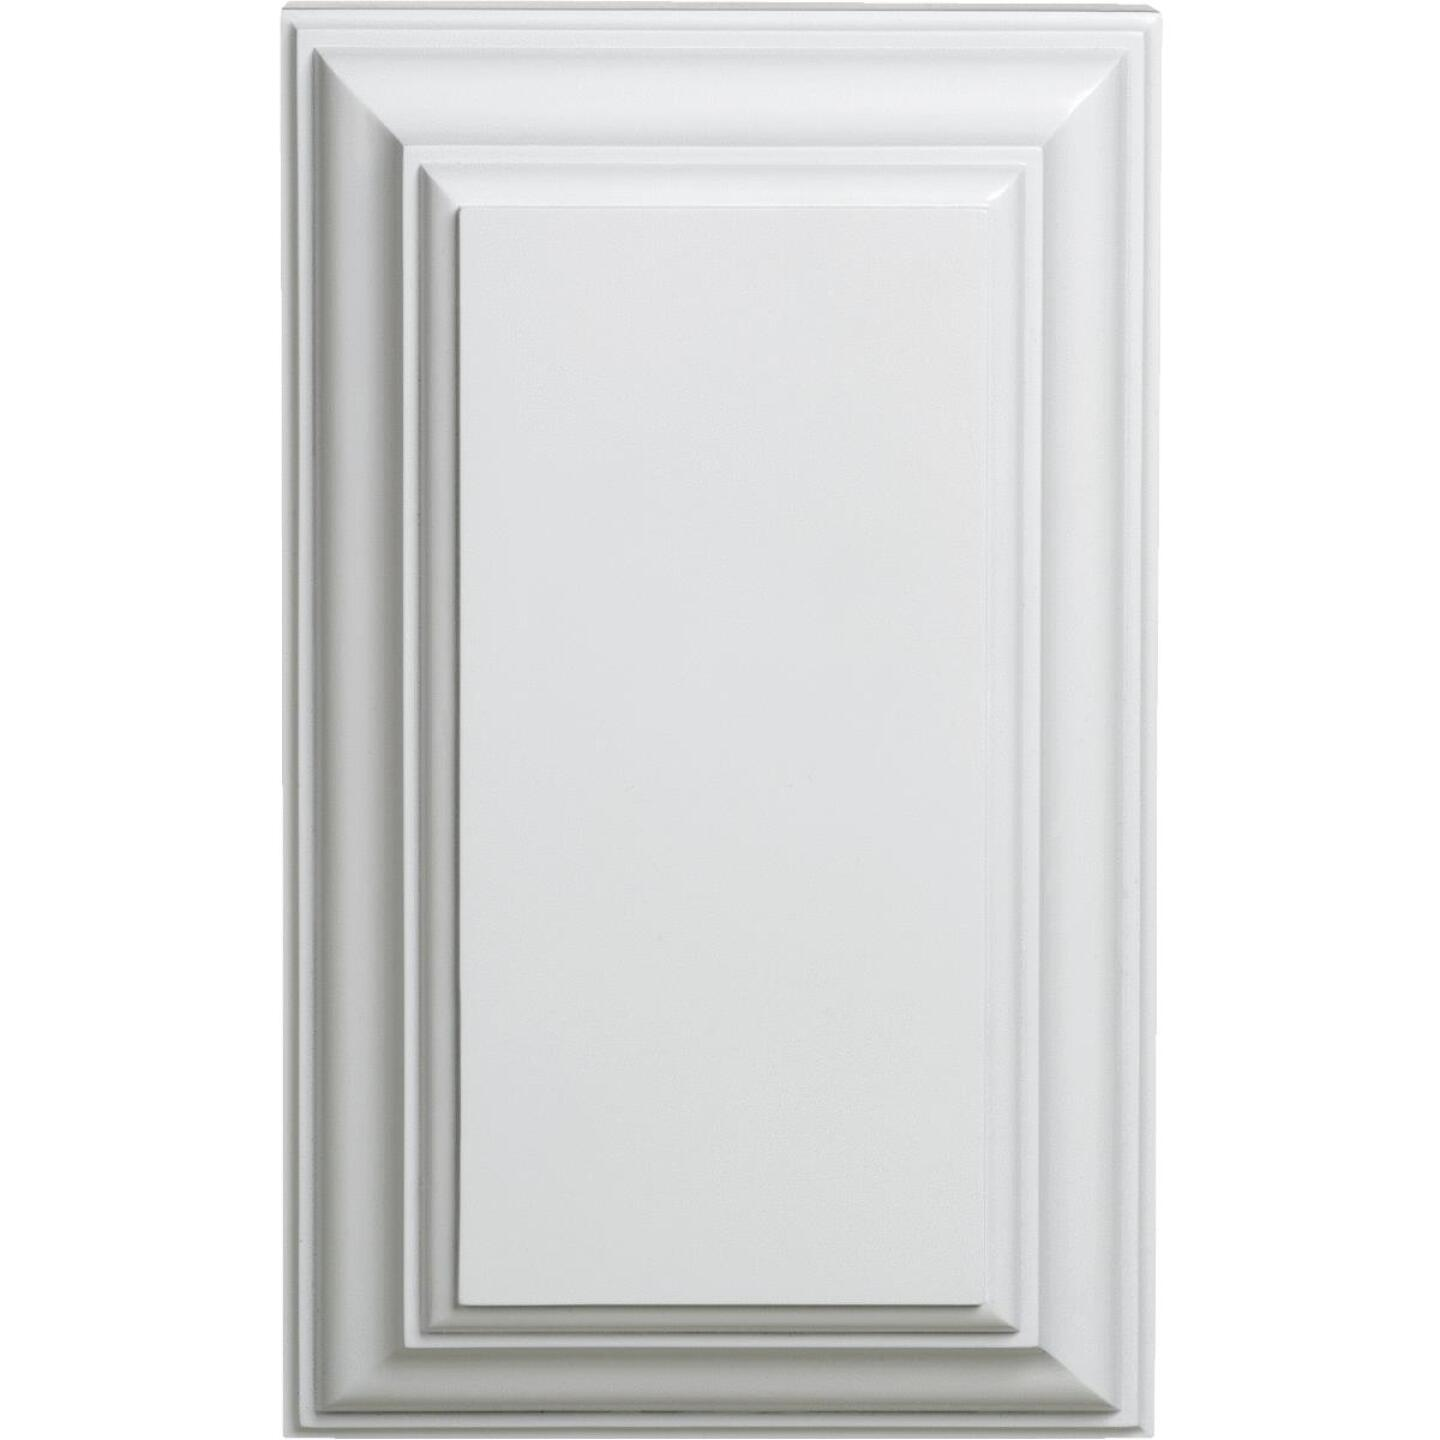 IQ America Wired White Contemporary Door Chime Image 1